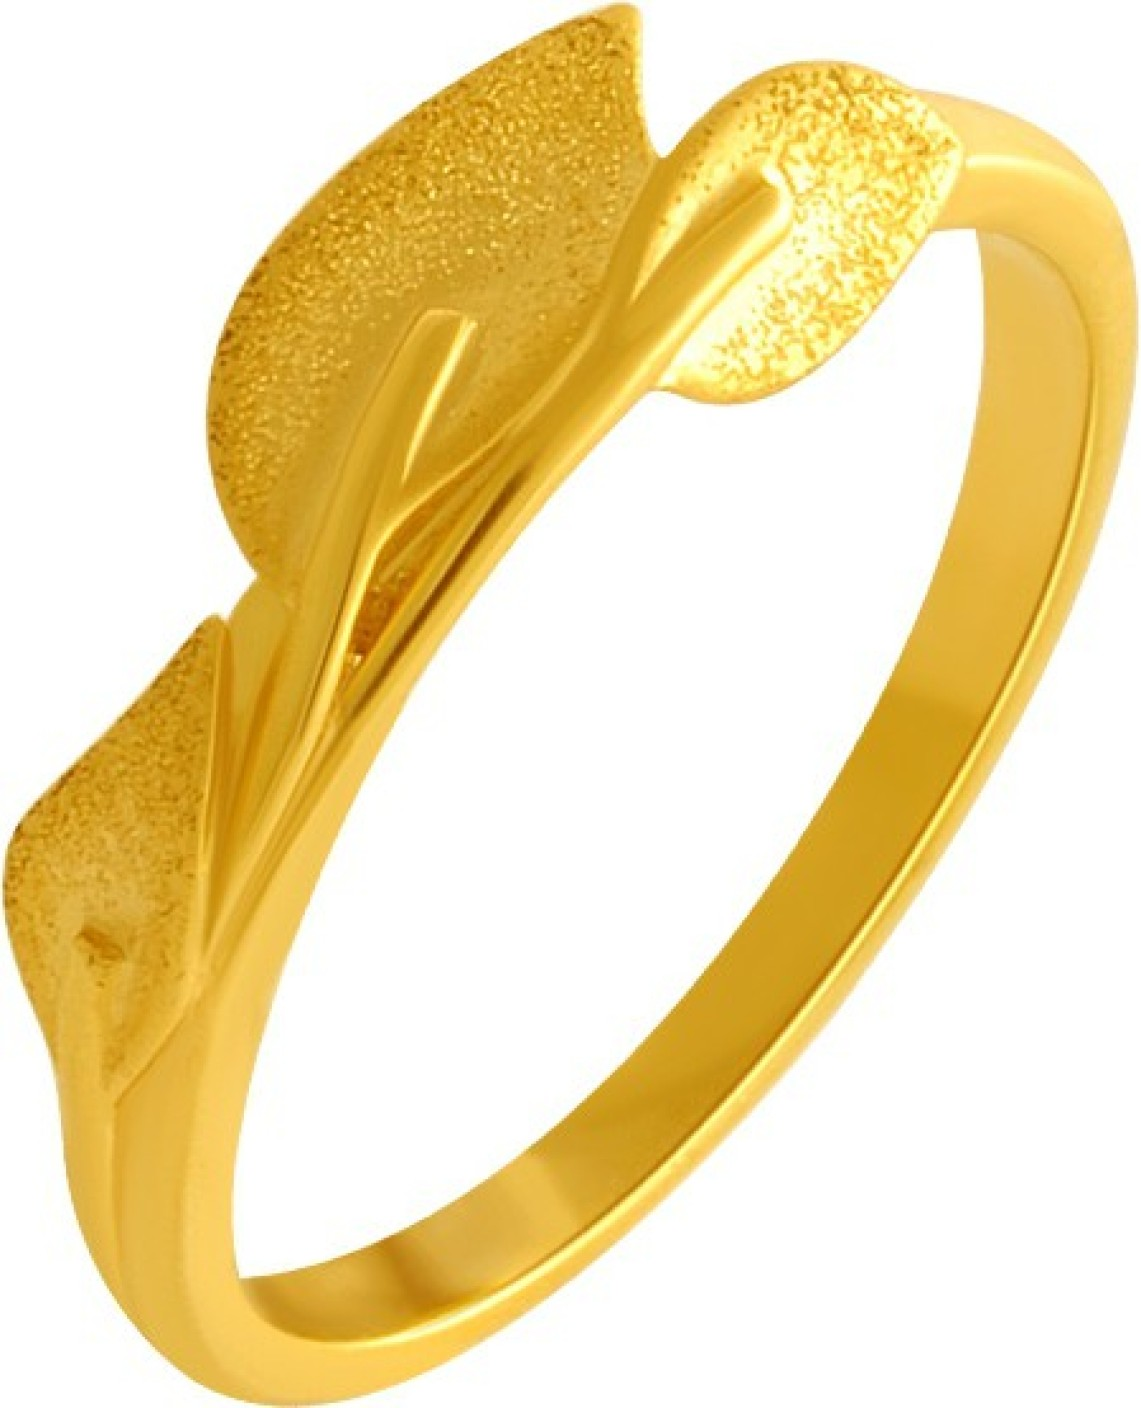 PC Chandra Jewellers 10kt Yellow Gold ring Price in India - Buy PC ...